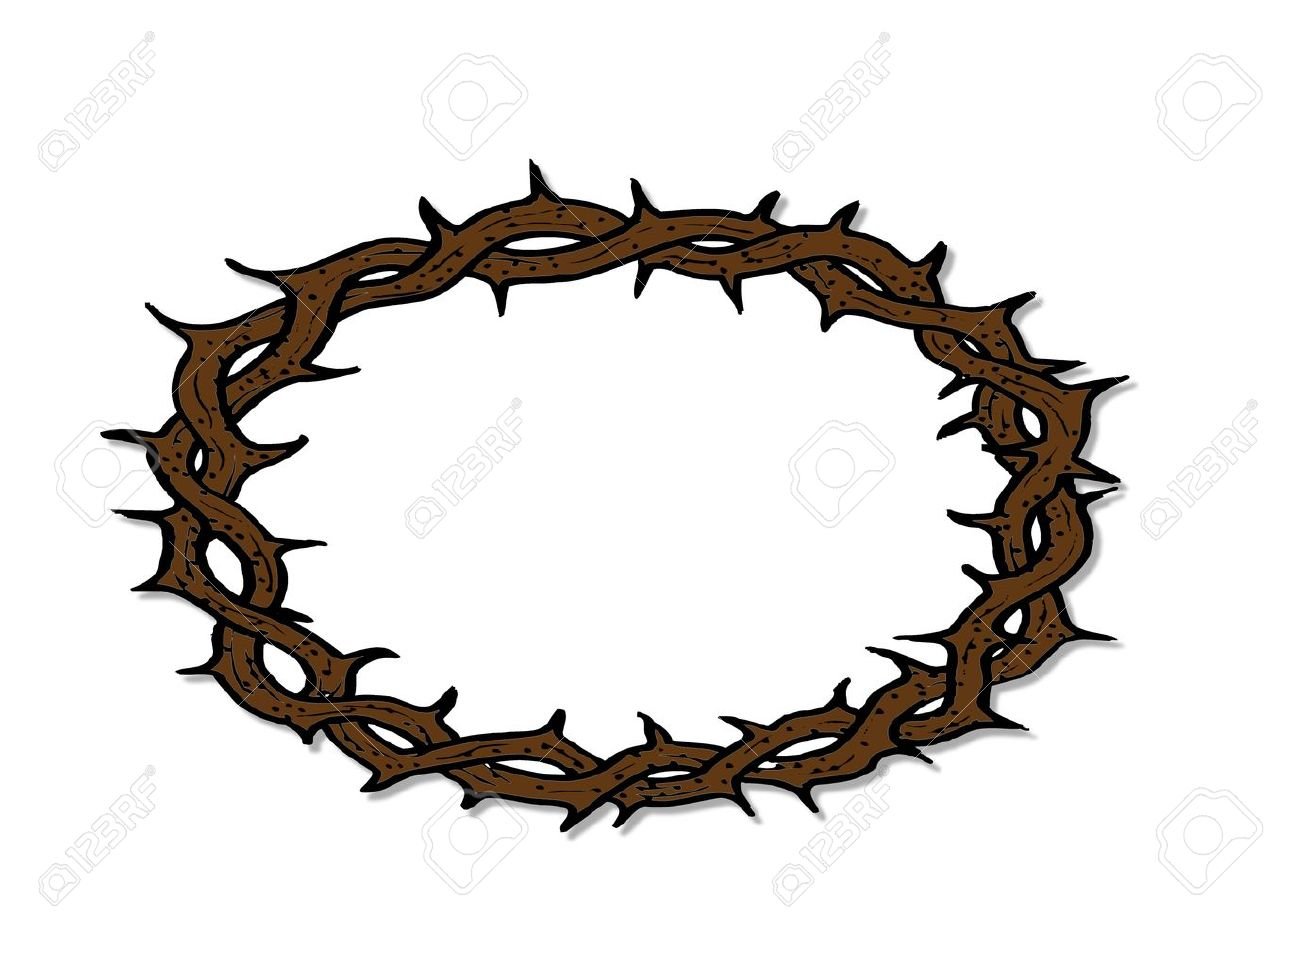 Thorns clipart crown thorns Crown Of Clipart  788